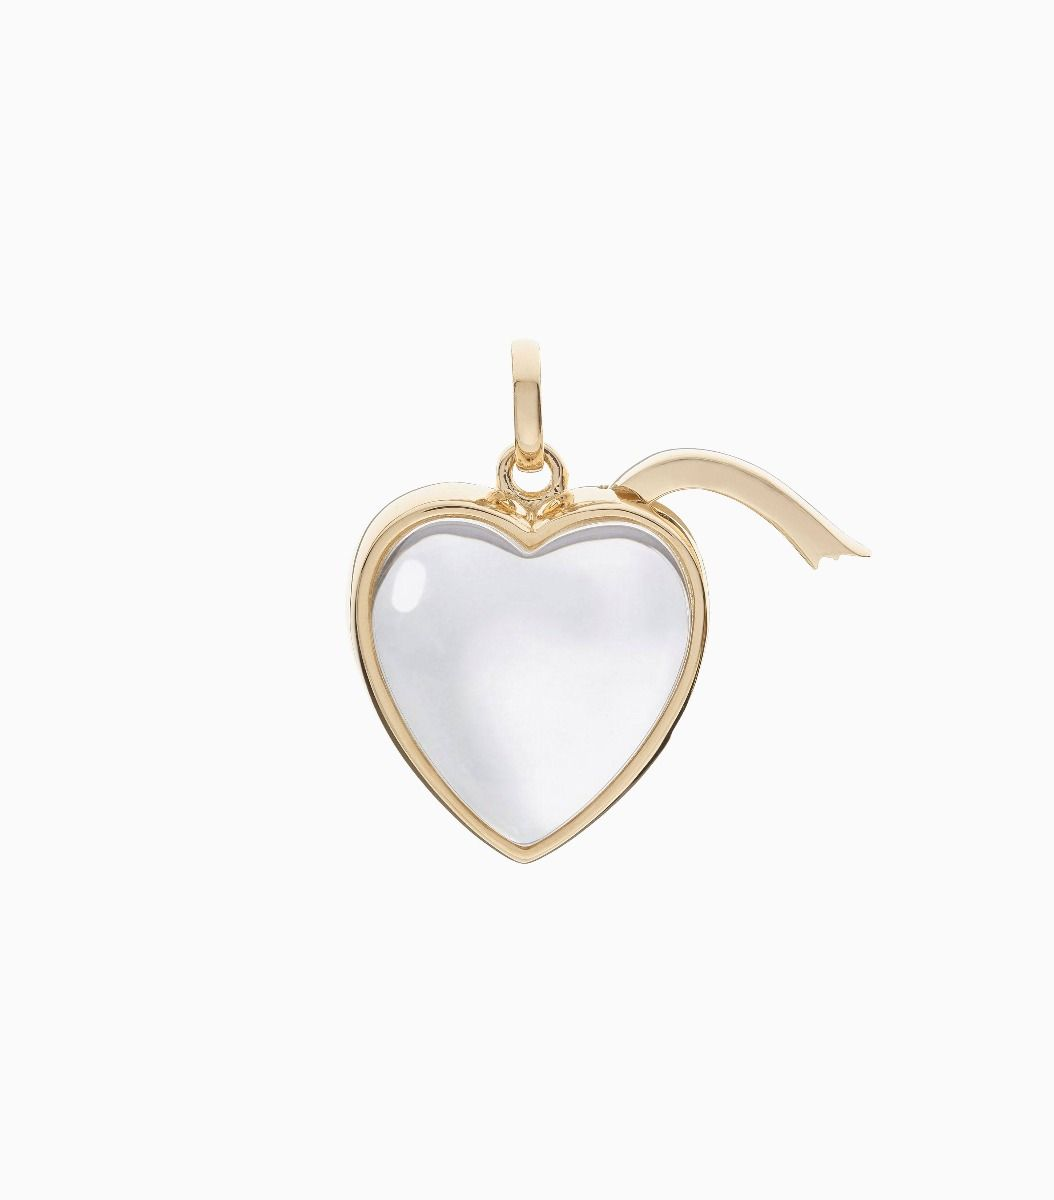 Medium Heart Locket - 14k Yellow Gold